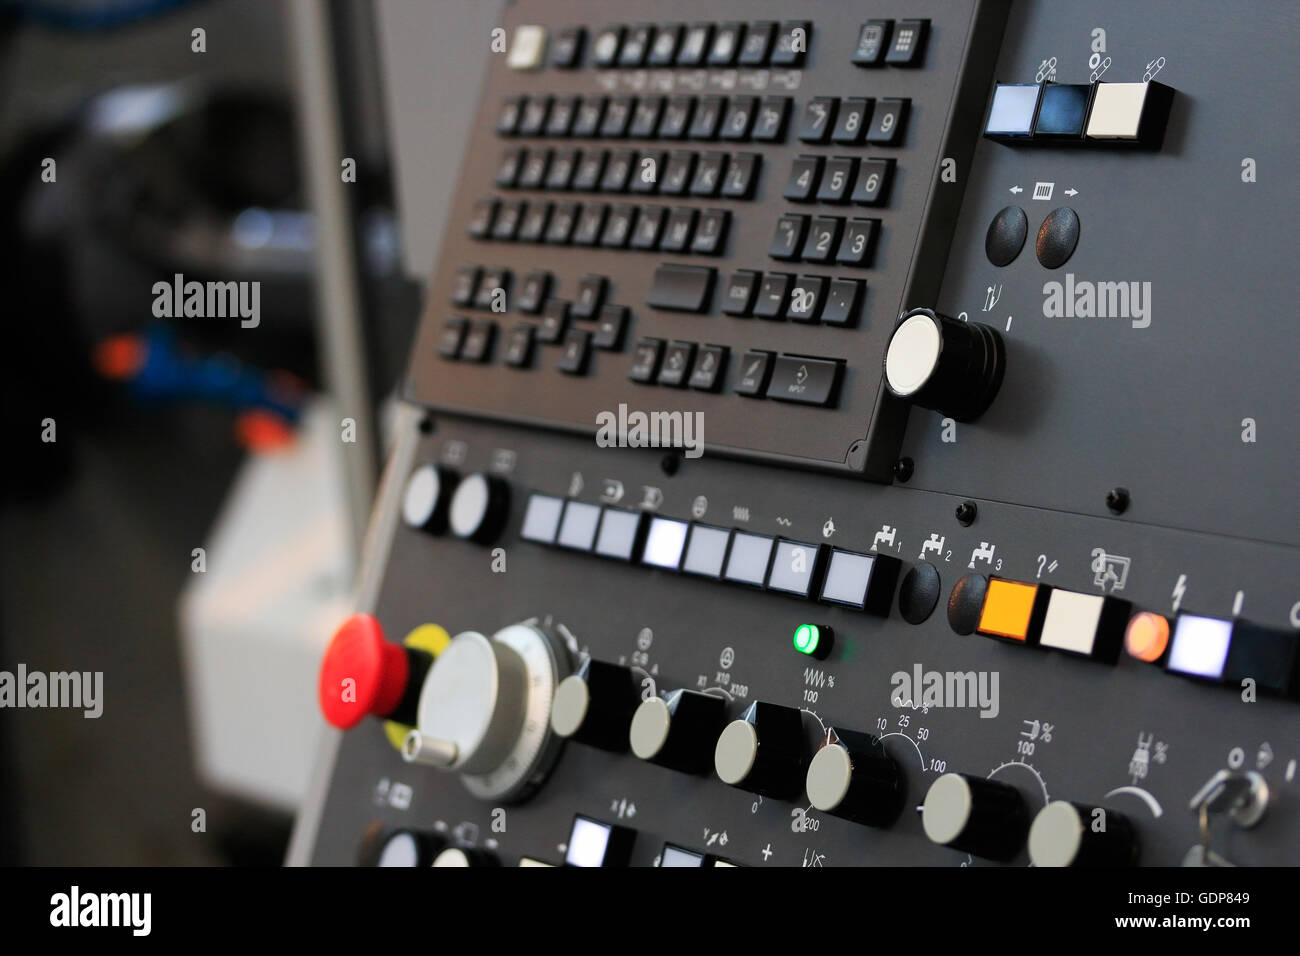 Modern CNC machining center with control panel on foreground. Close up view. Selective focus. - Stock Image